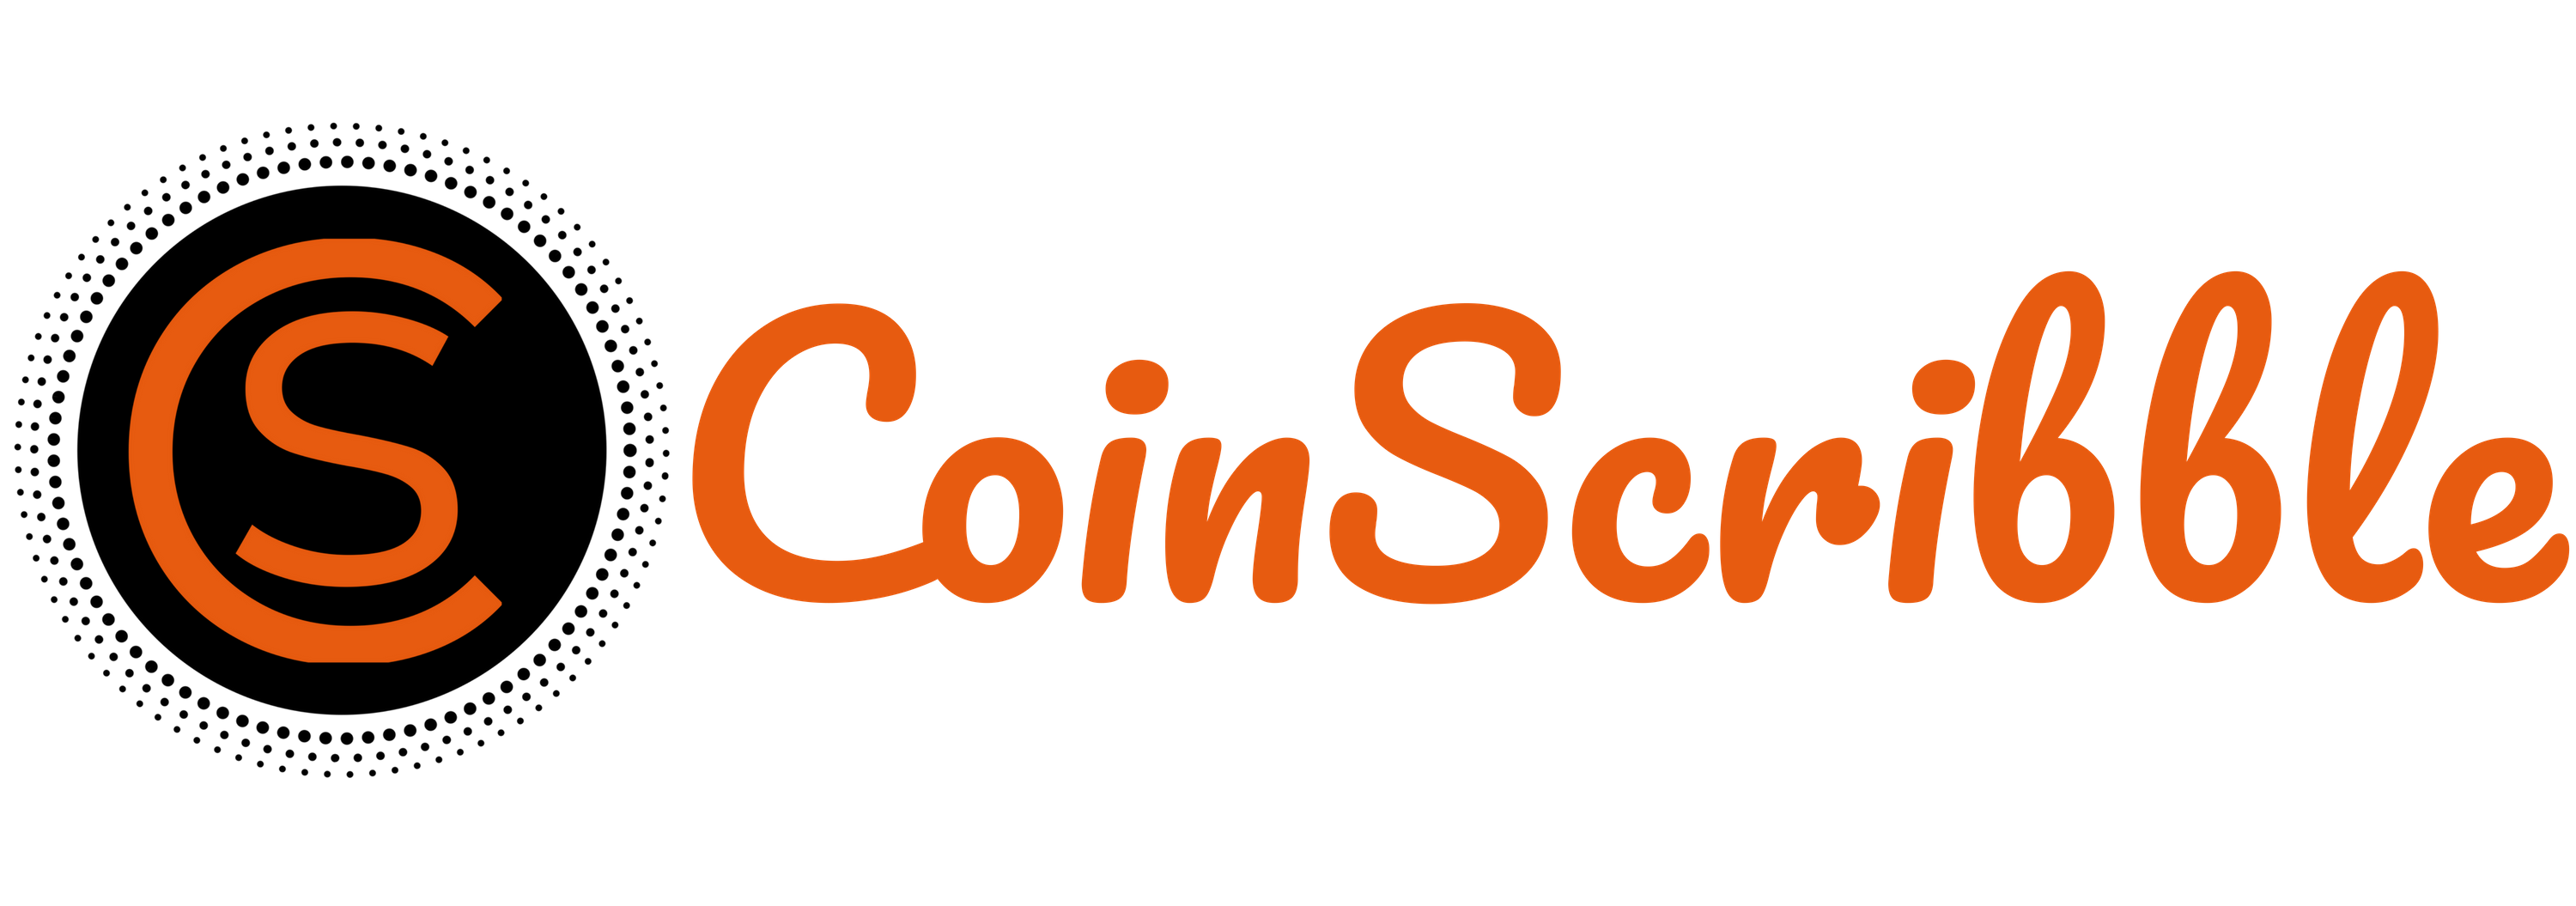 CoinScribble